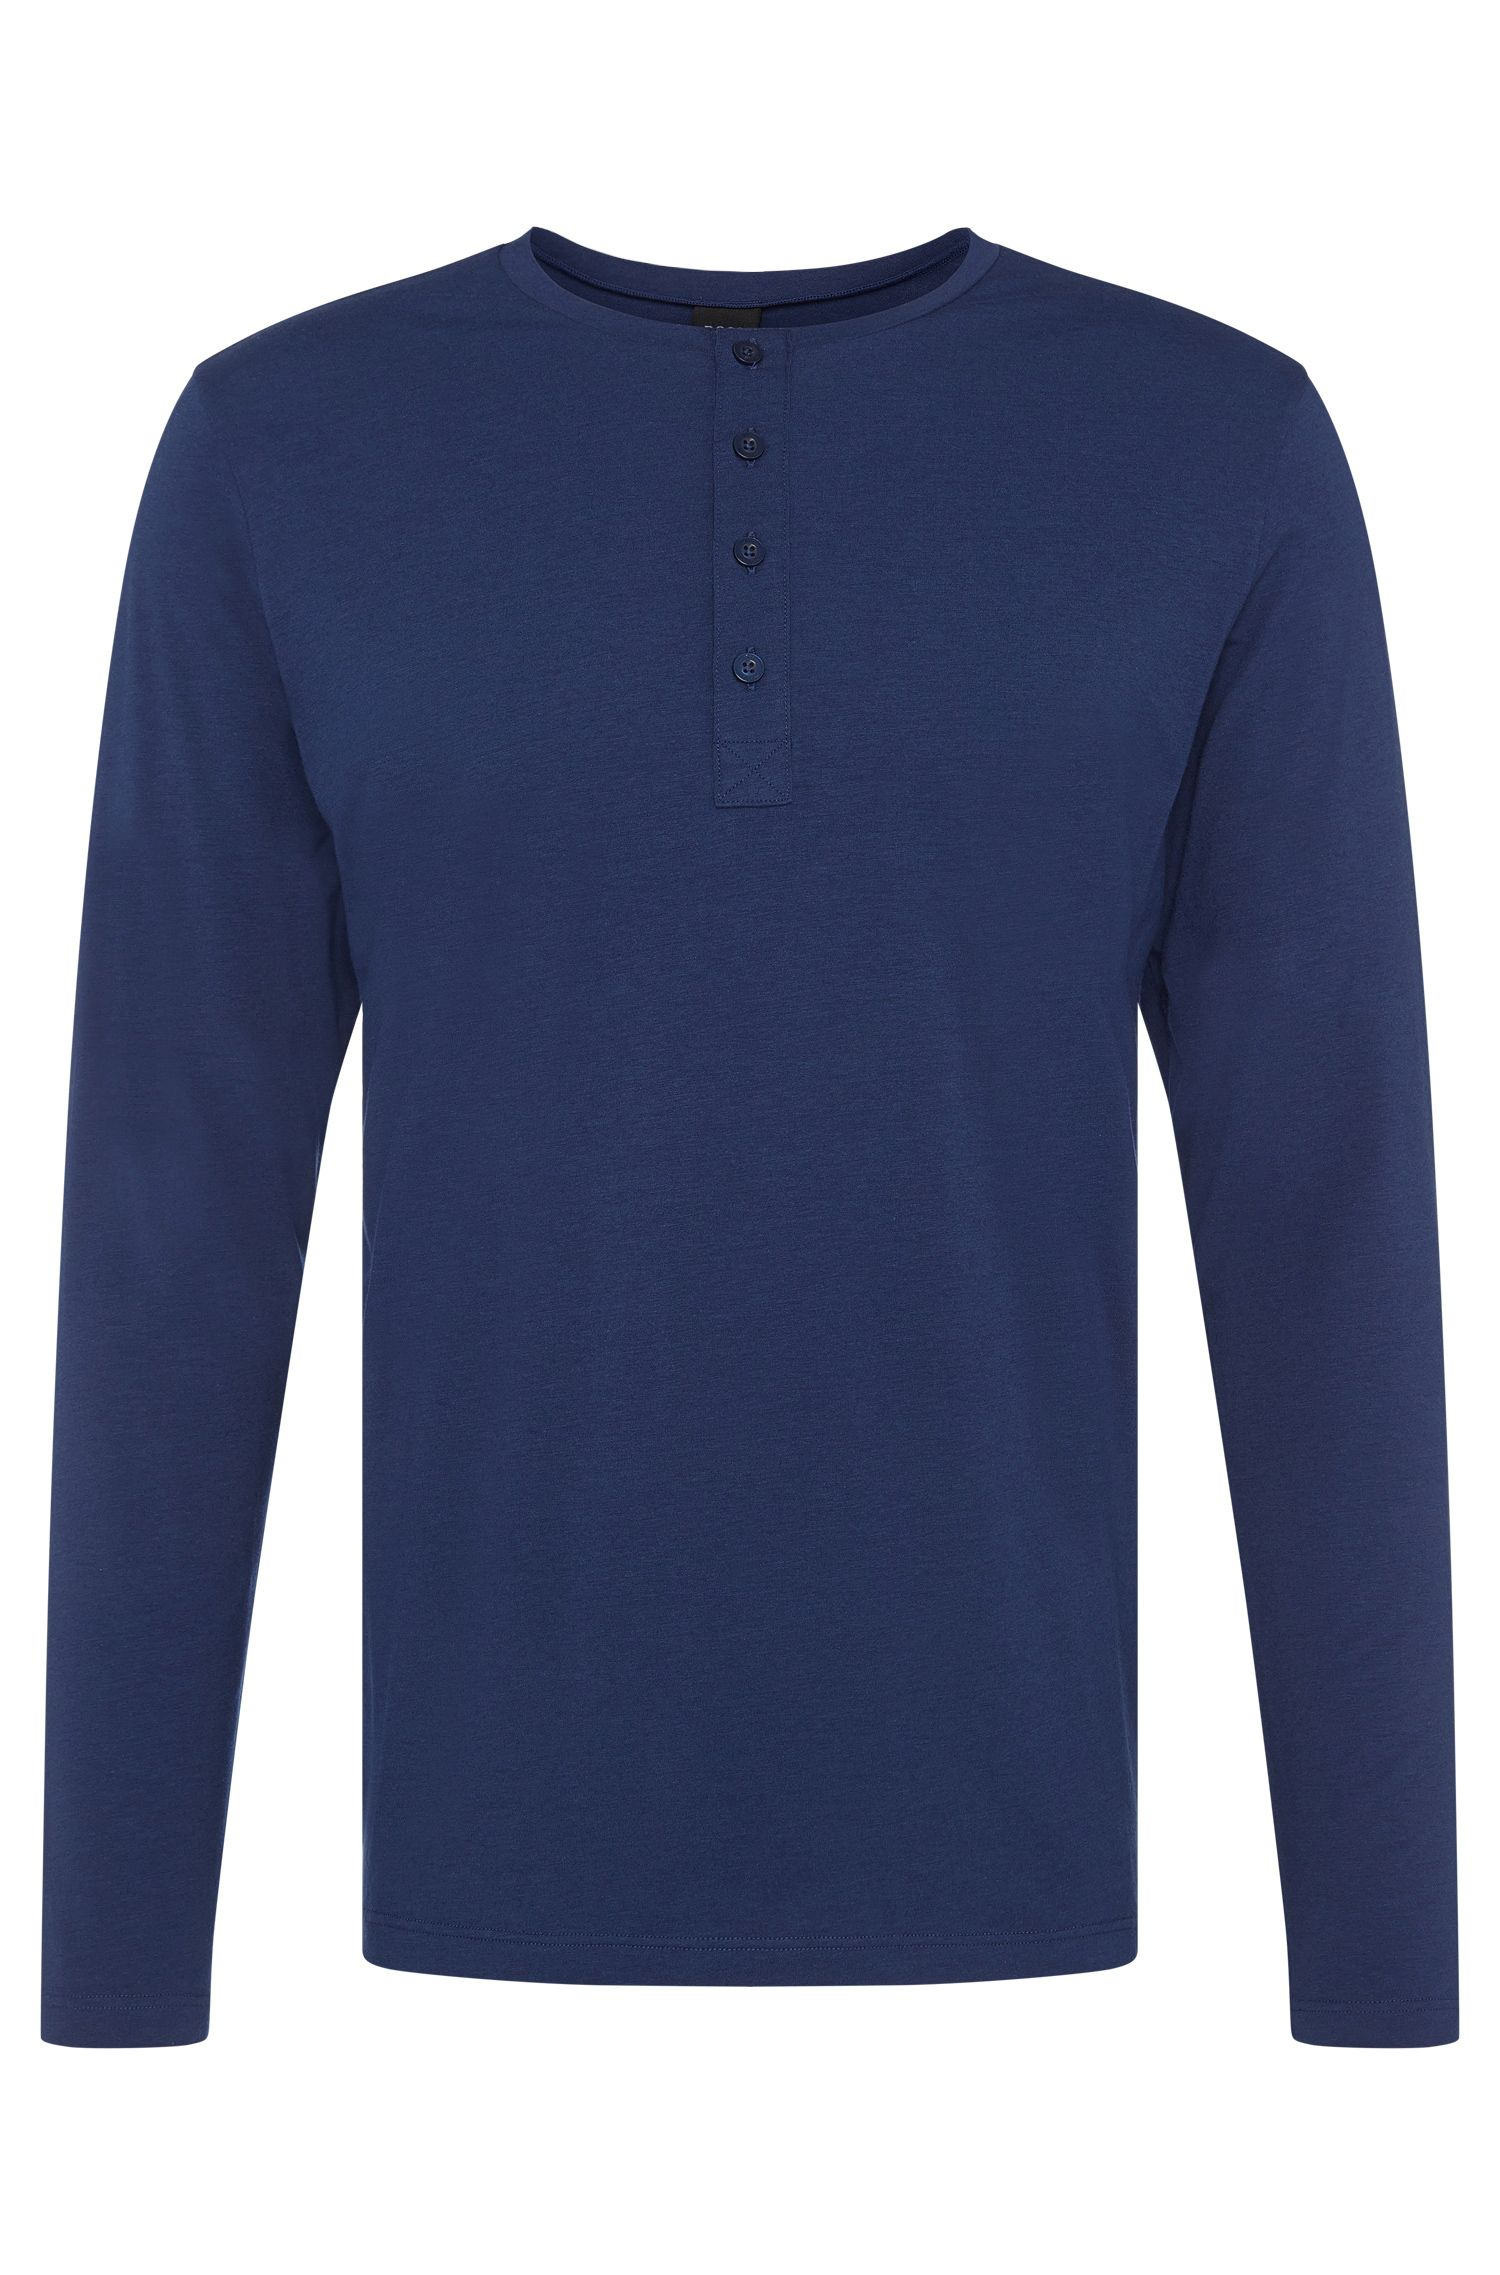 Long-sleeved shirt in stretchy cotton blend with modal: 'LS-Shirt BP Balance'